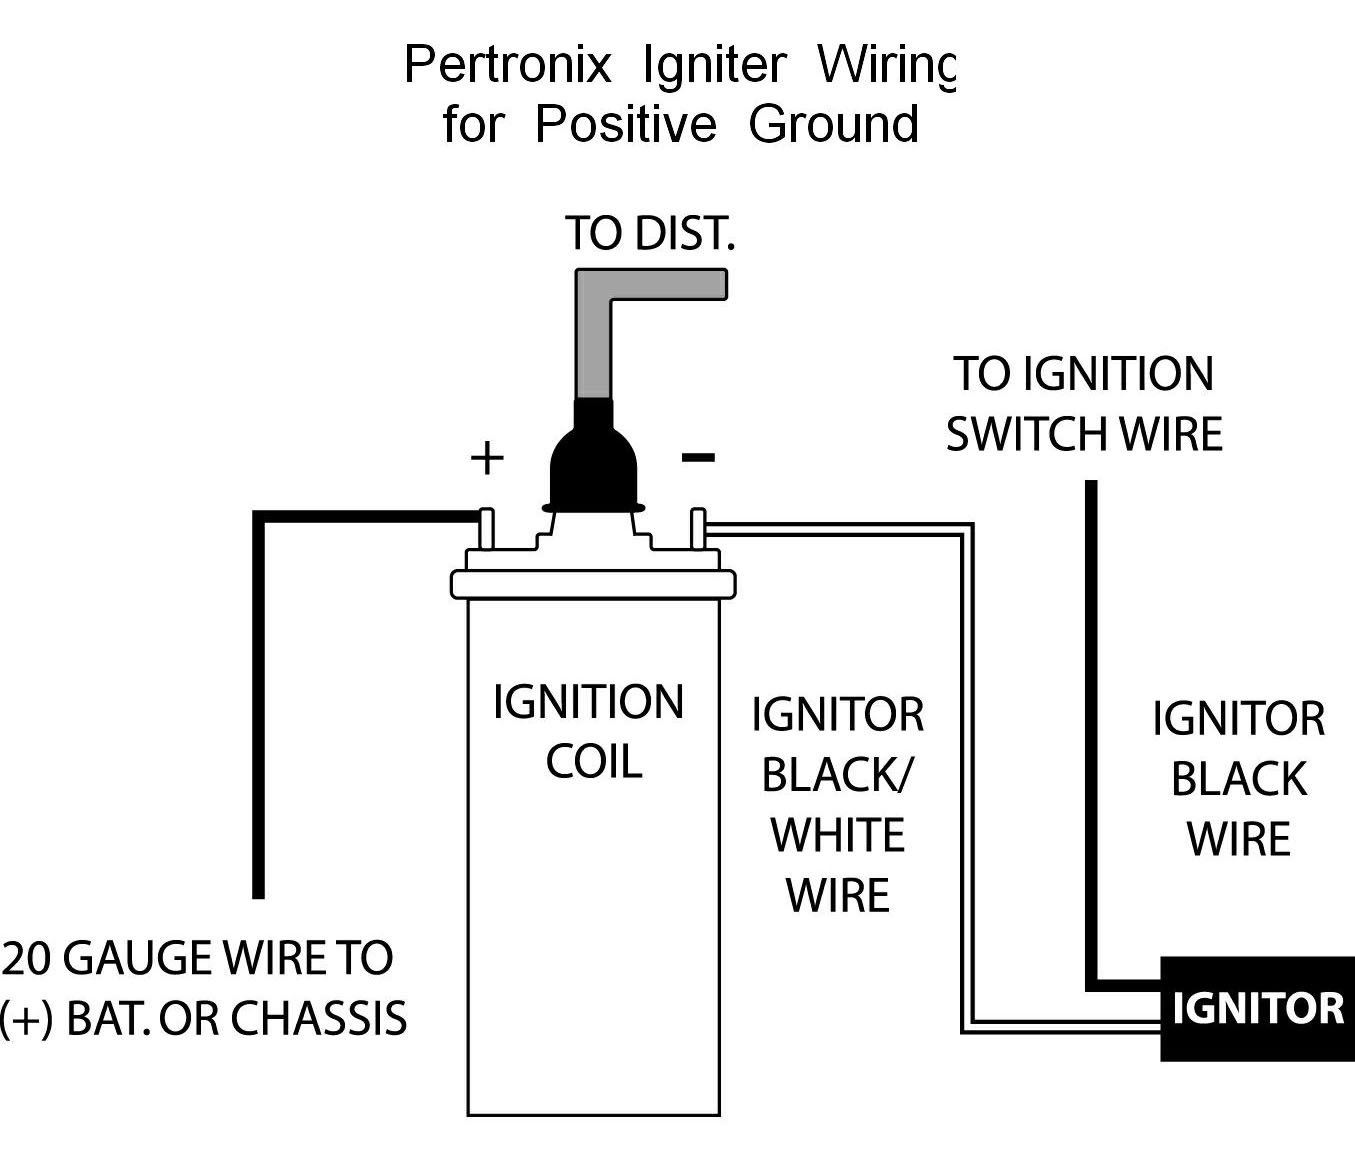 12v Tractor Ignition System Wiring Diagram With Resistor 56 Est Marine Distributor Chevy Perposgndwiring Coil 97 At